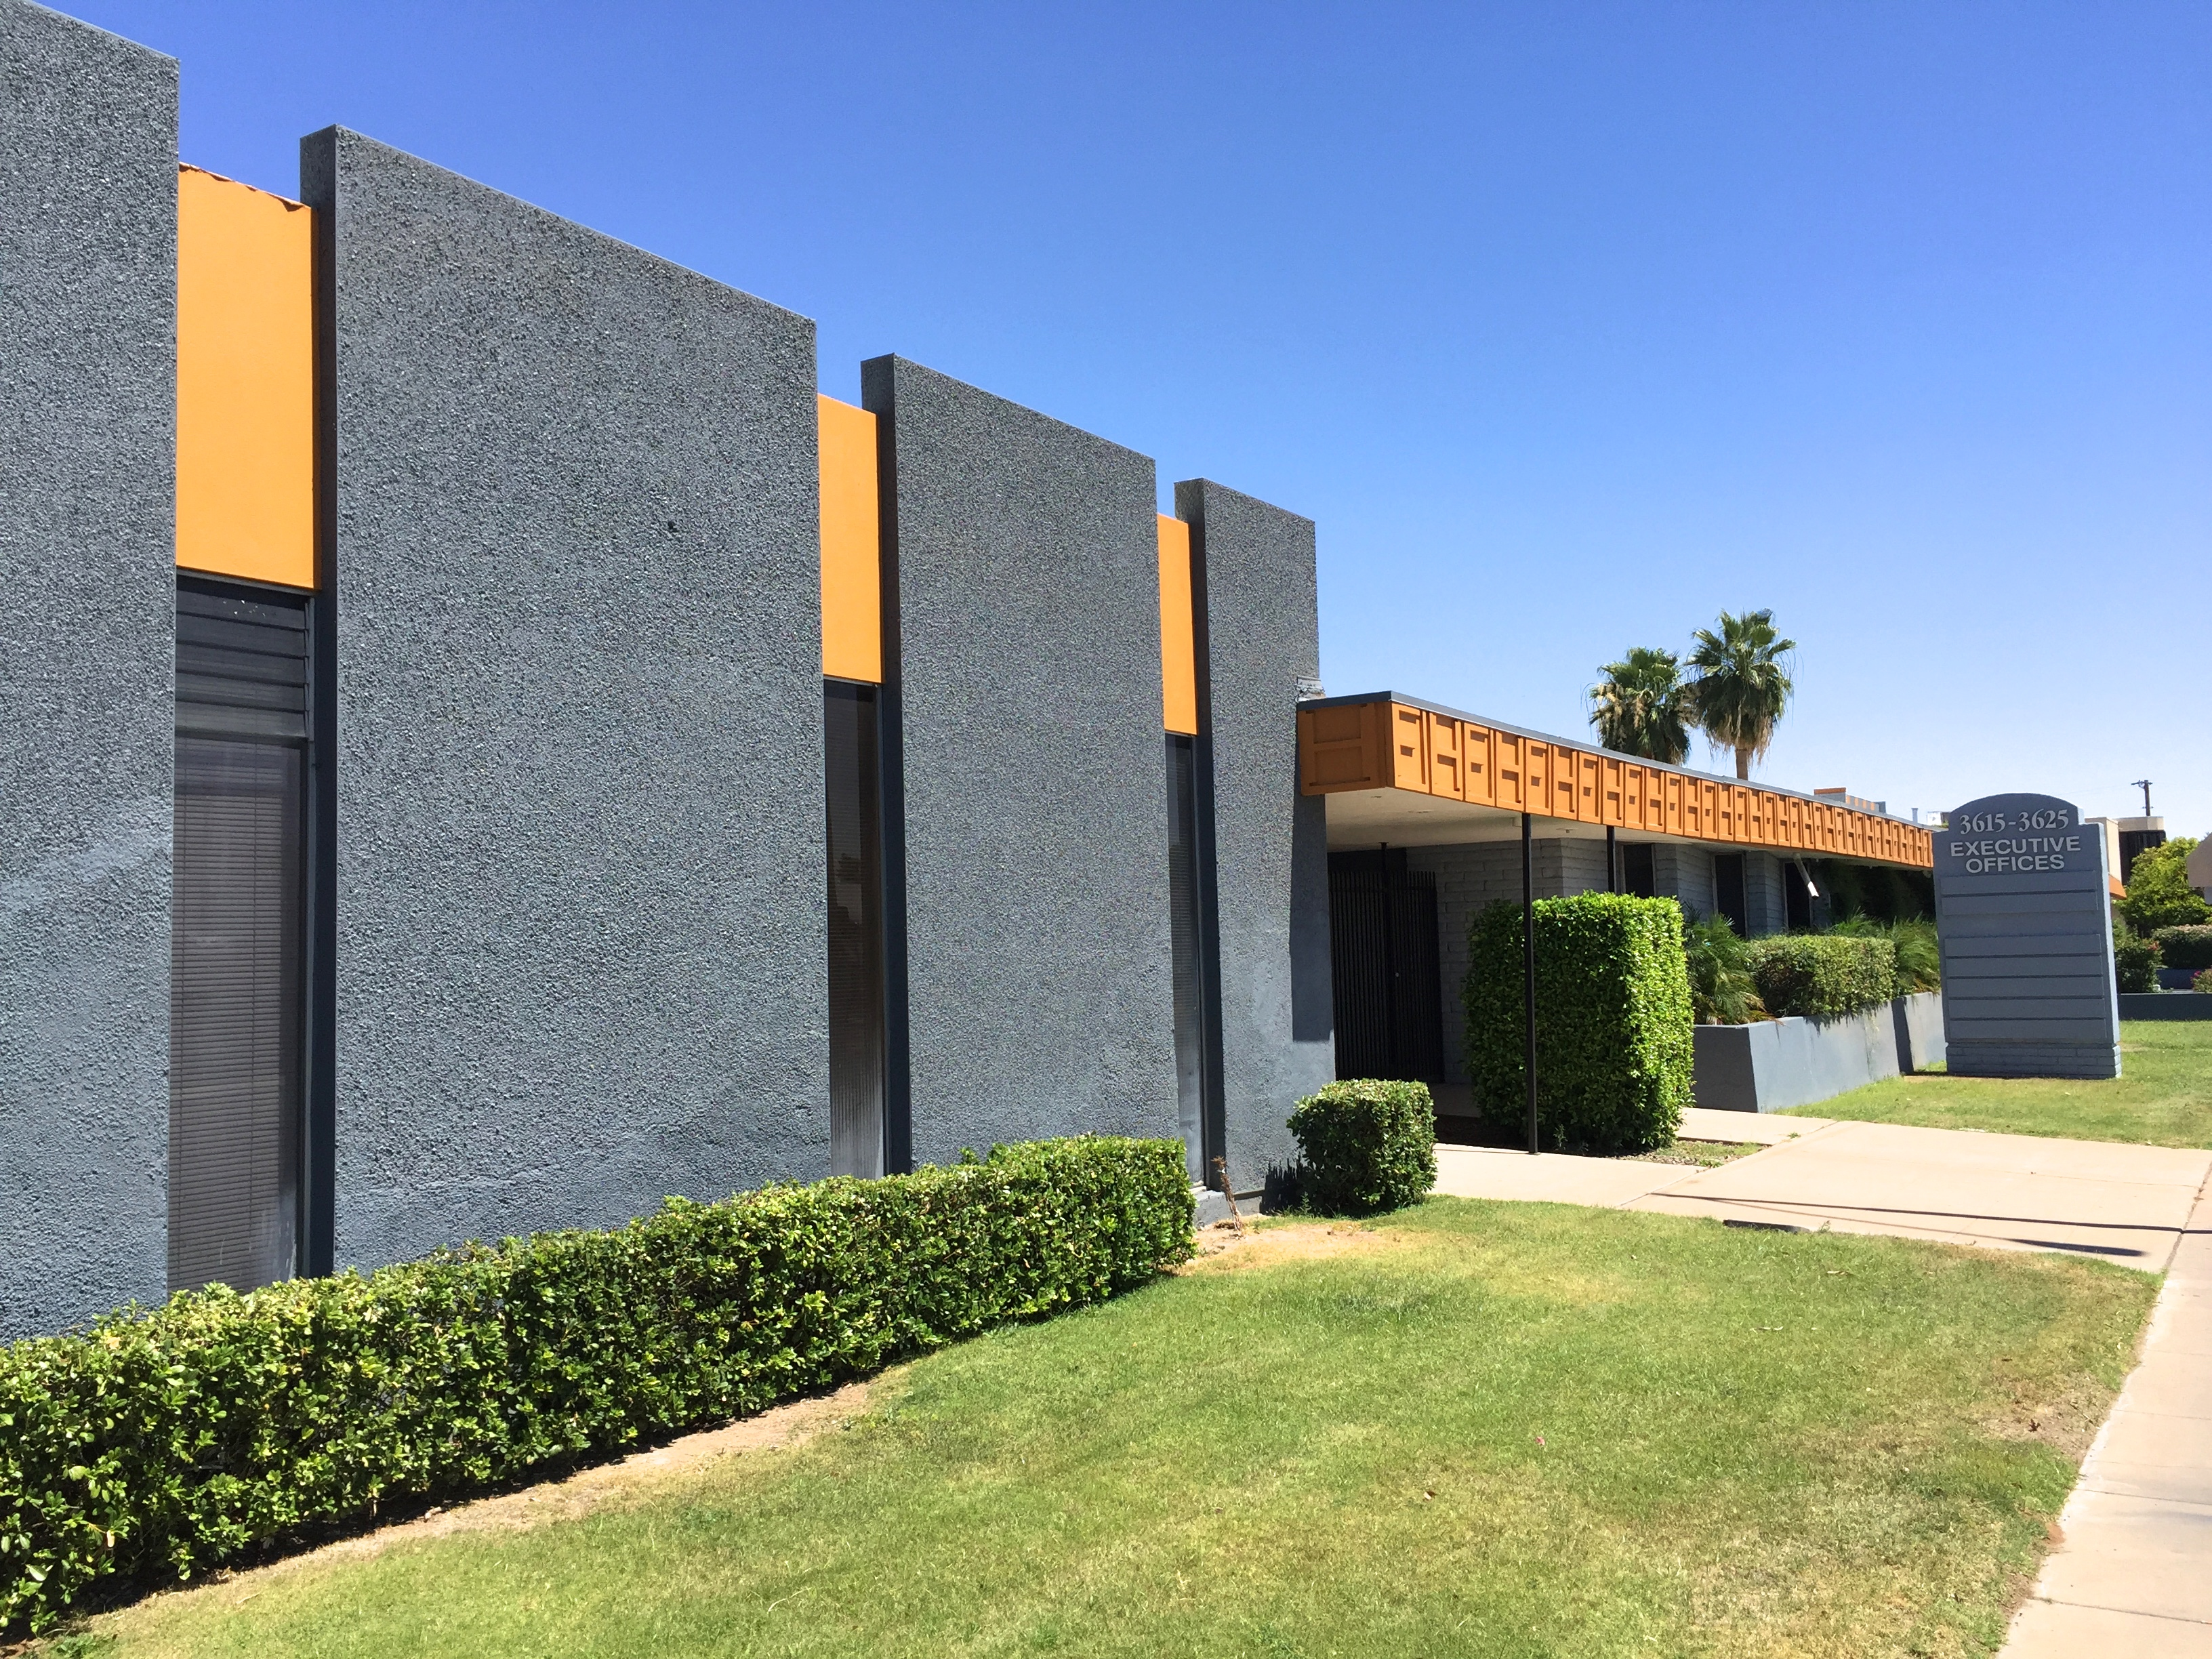 16th Street | Phoenix Arizona Multifamily Adaptive Reuse Investment